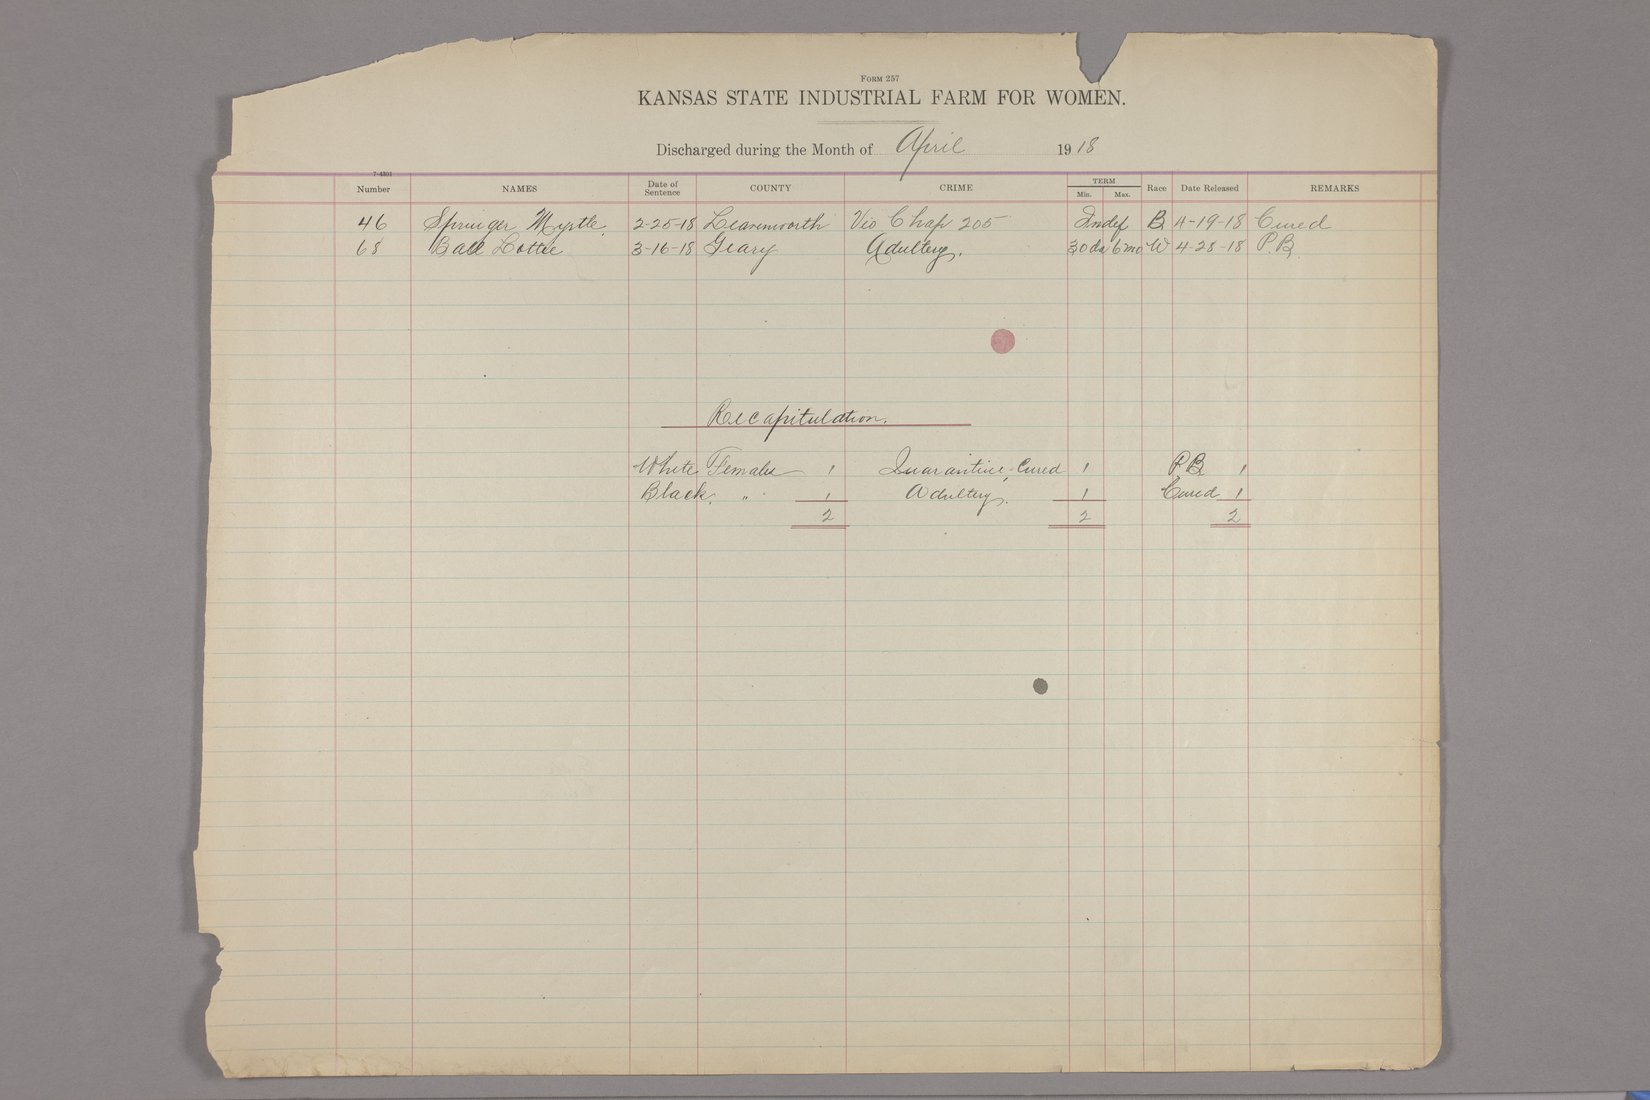 Inmates discharged register, Kansas State Industrial Farm for Women - April, 1918 & recapitulation page